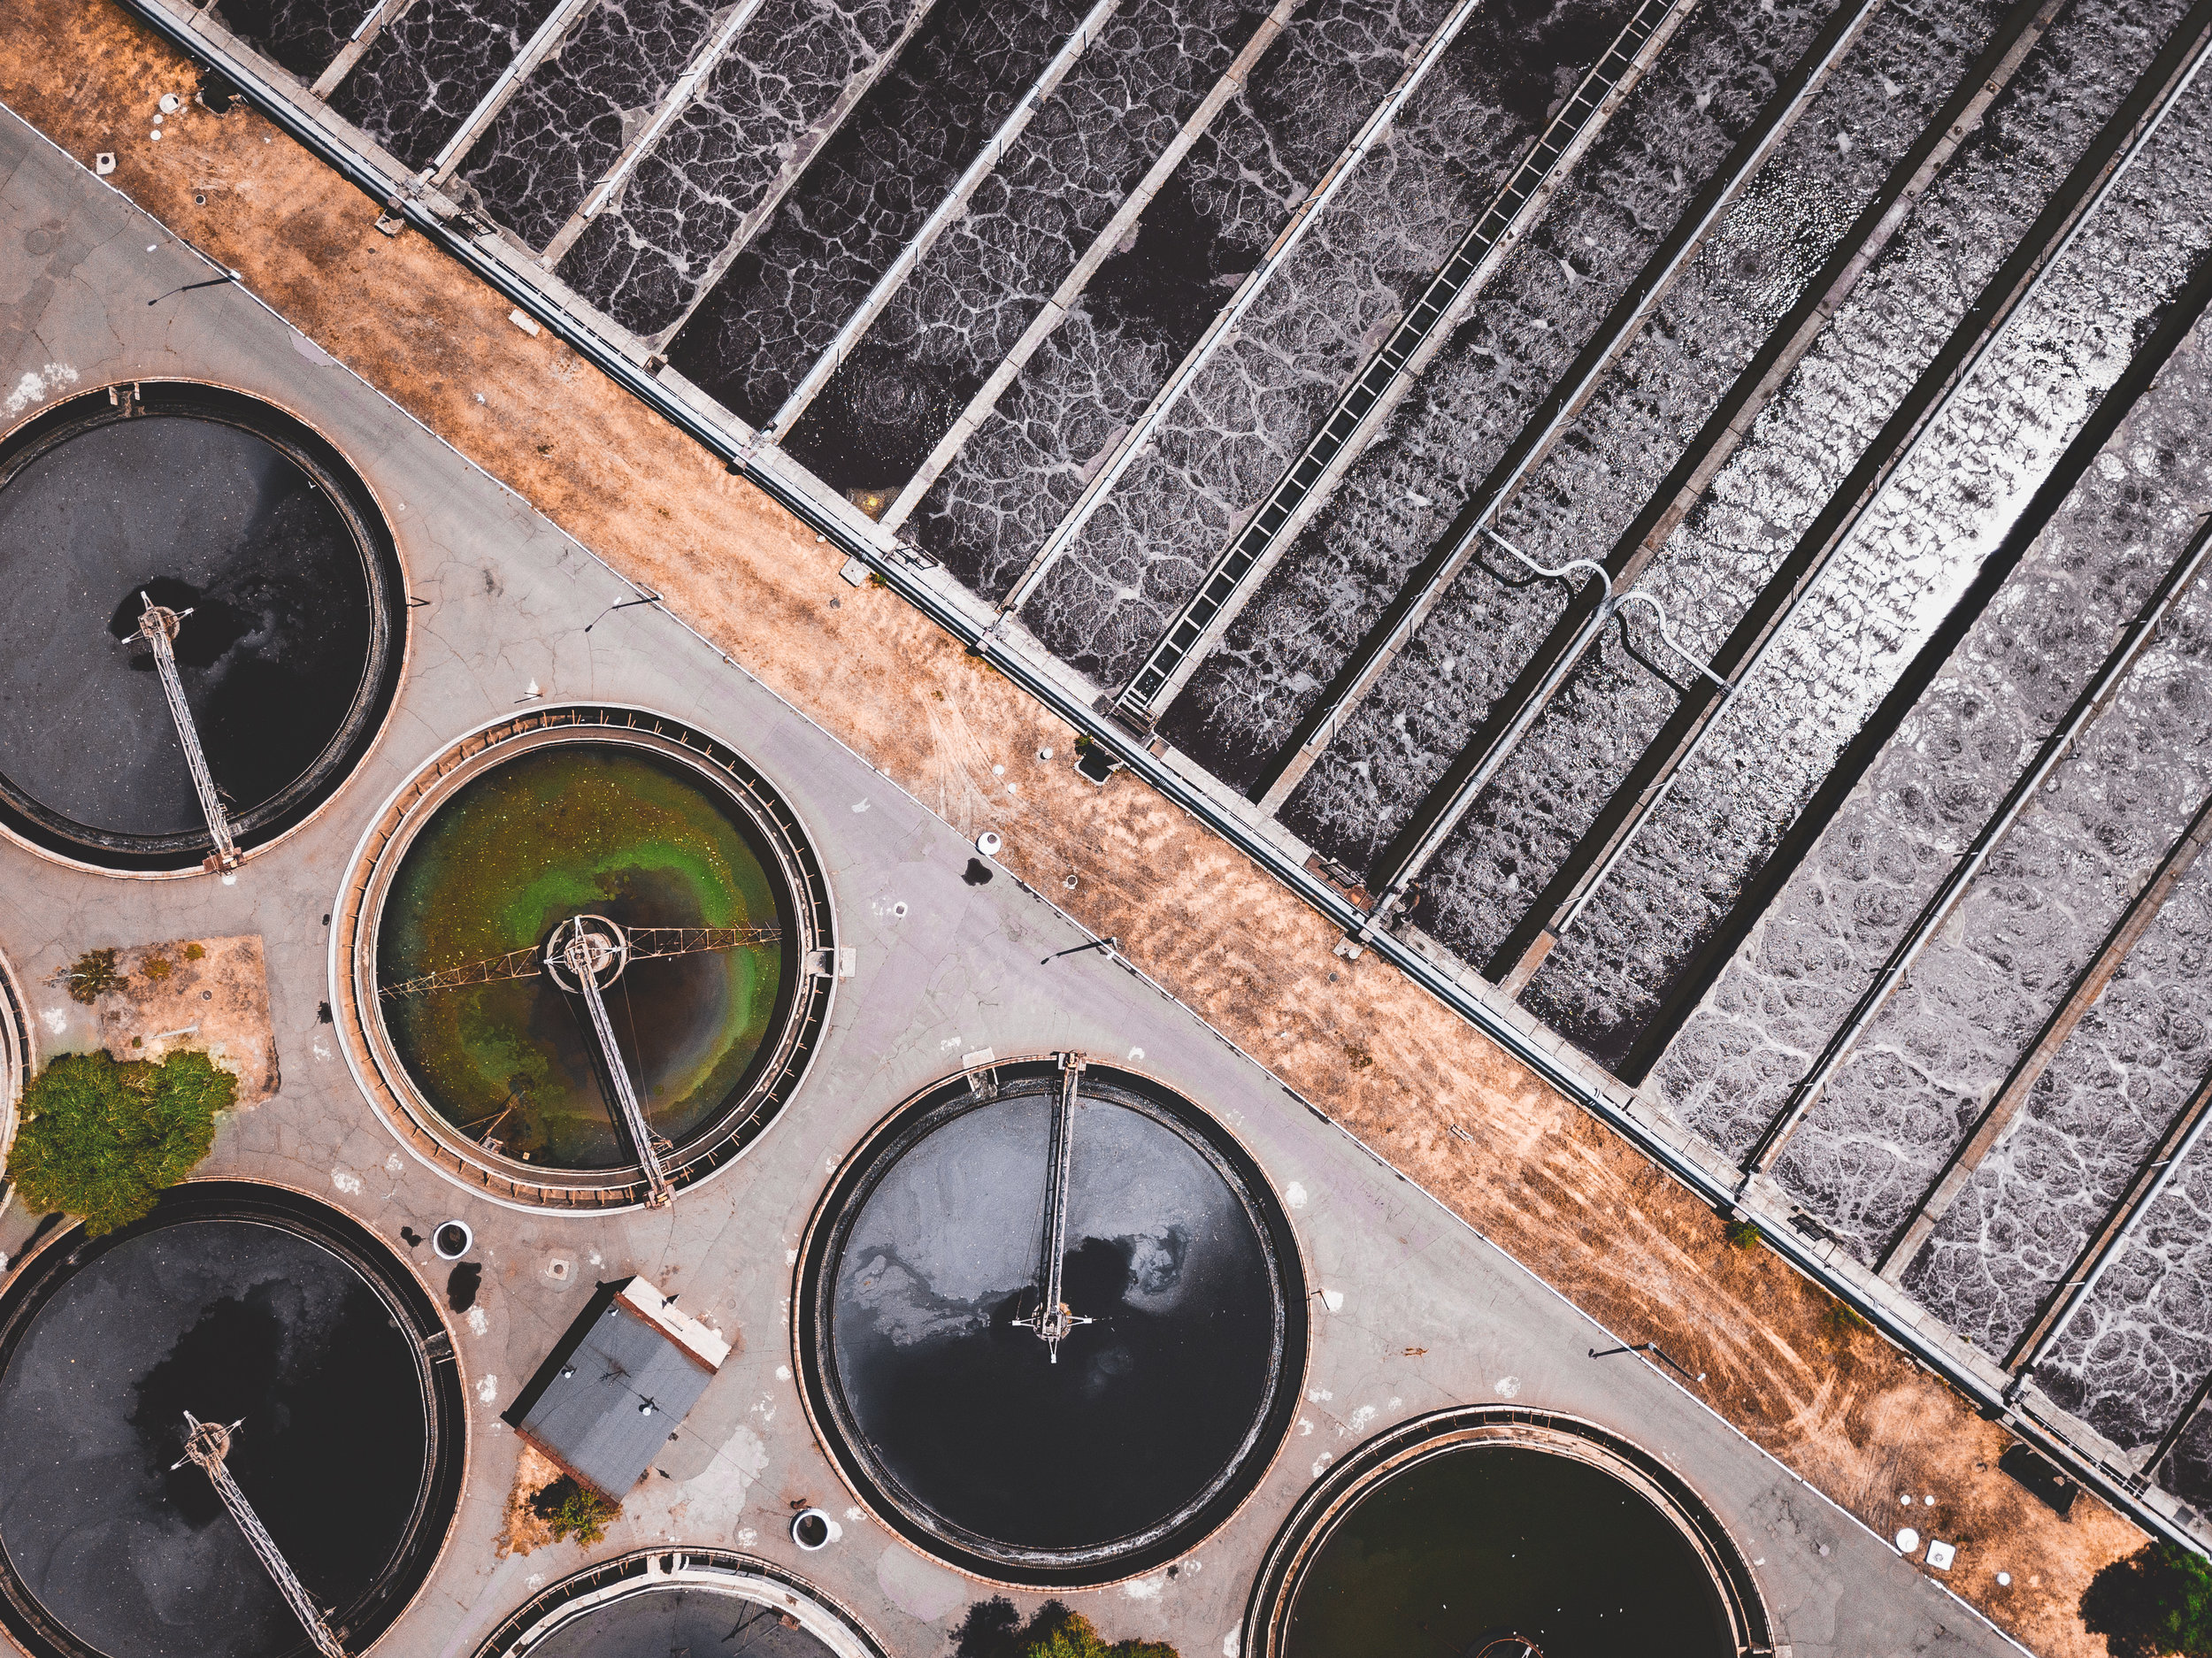 The recycling of wastewater in sewage treatment plants like this one decreases pollution of the environment while increasing production of fertilizers and energy. Photo credit: Ivan Bandura